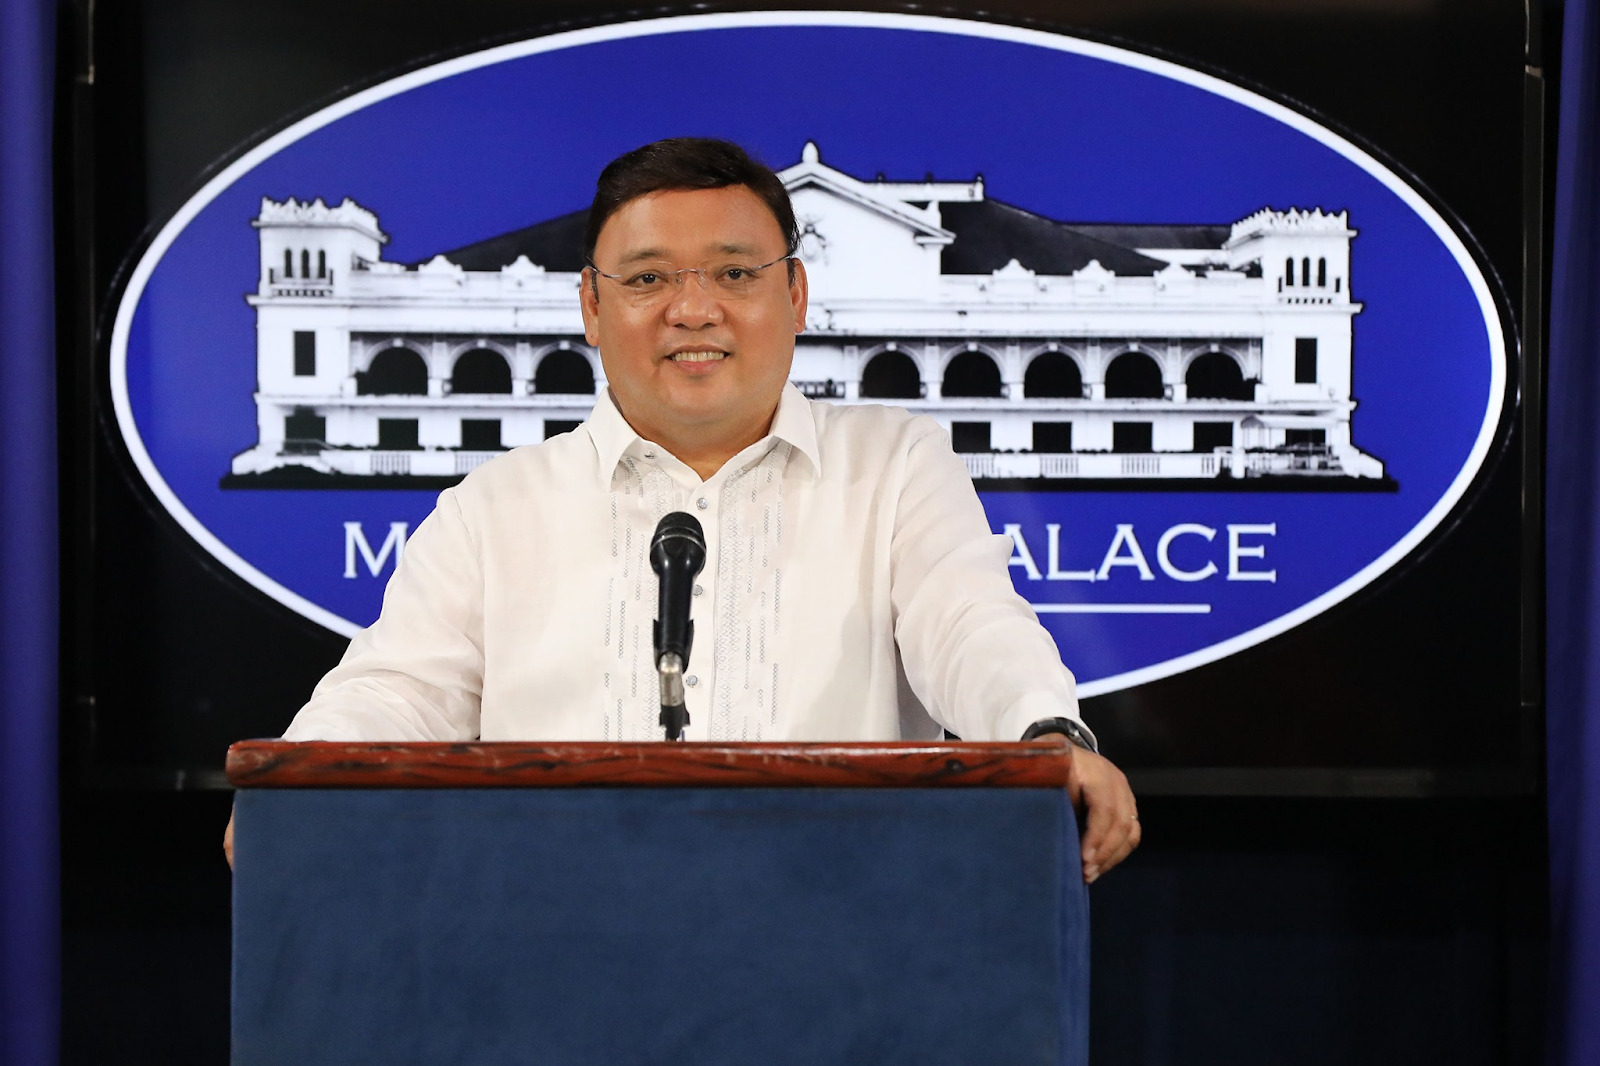 Harry Roque just chose the topic for the proposed debate with retired Supreme Court Justice Antonio Carpio